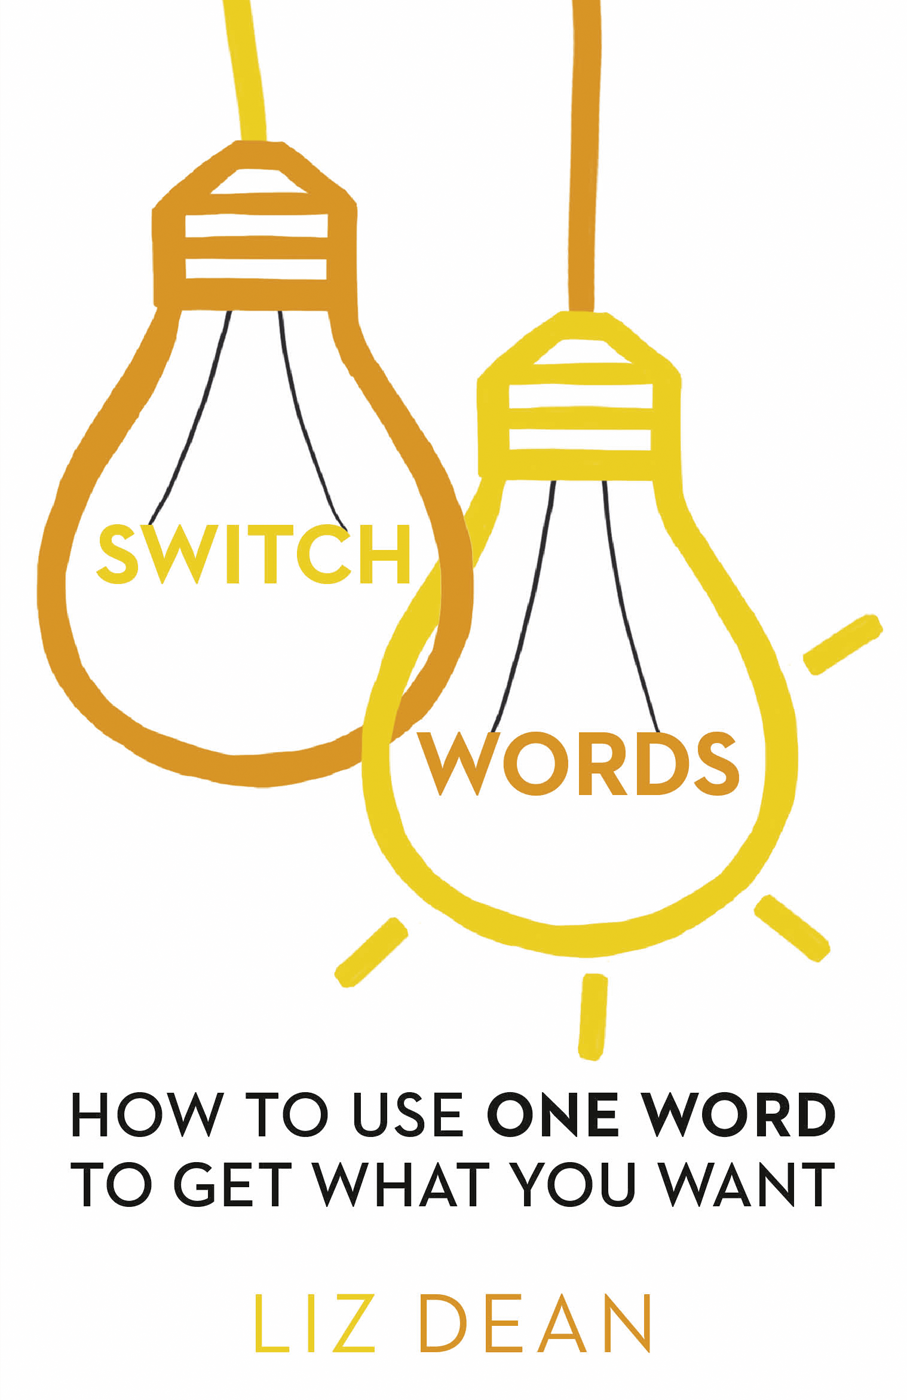 Liz Dean Switchwords: How to Use One Word to Get What You Want